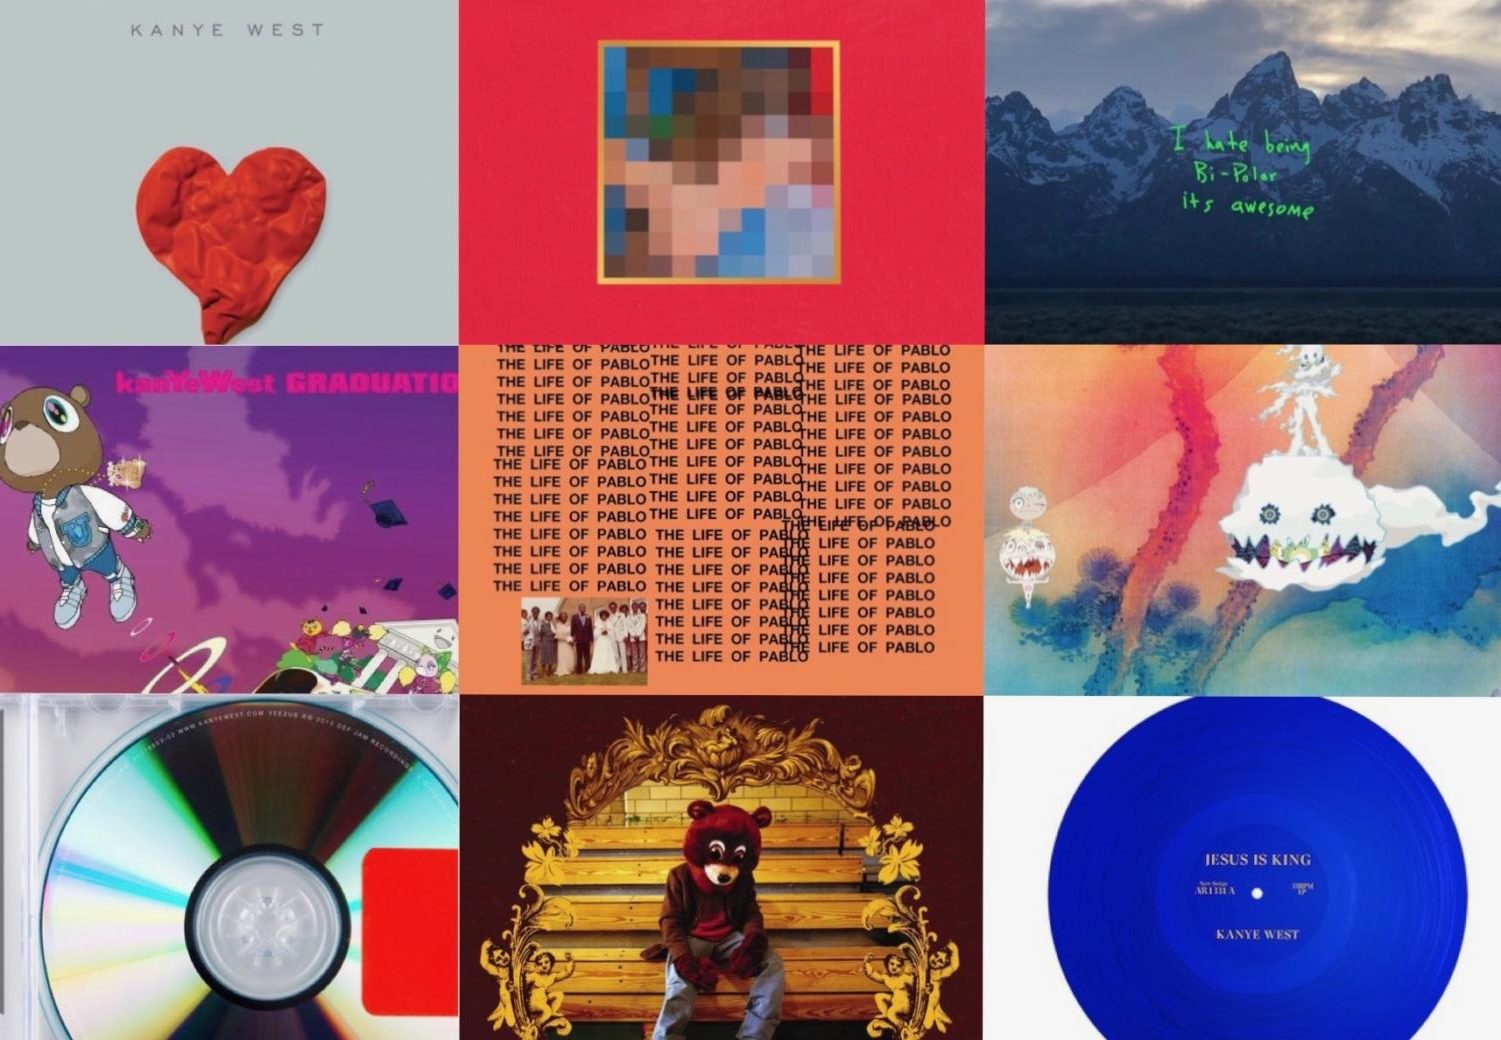 Throughout the years, Kanye West has released many different albums.  On the bottom right is his latest, JESUS IS KING.